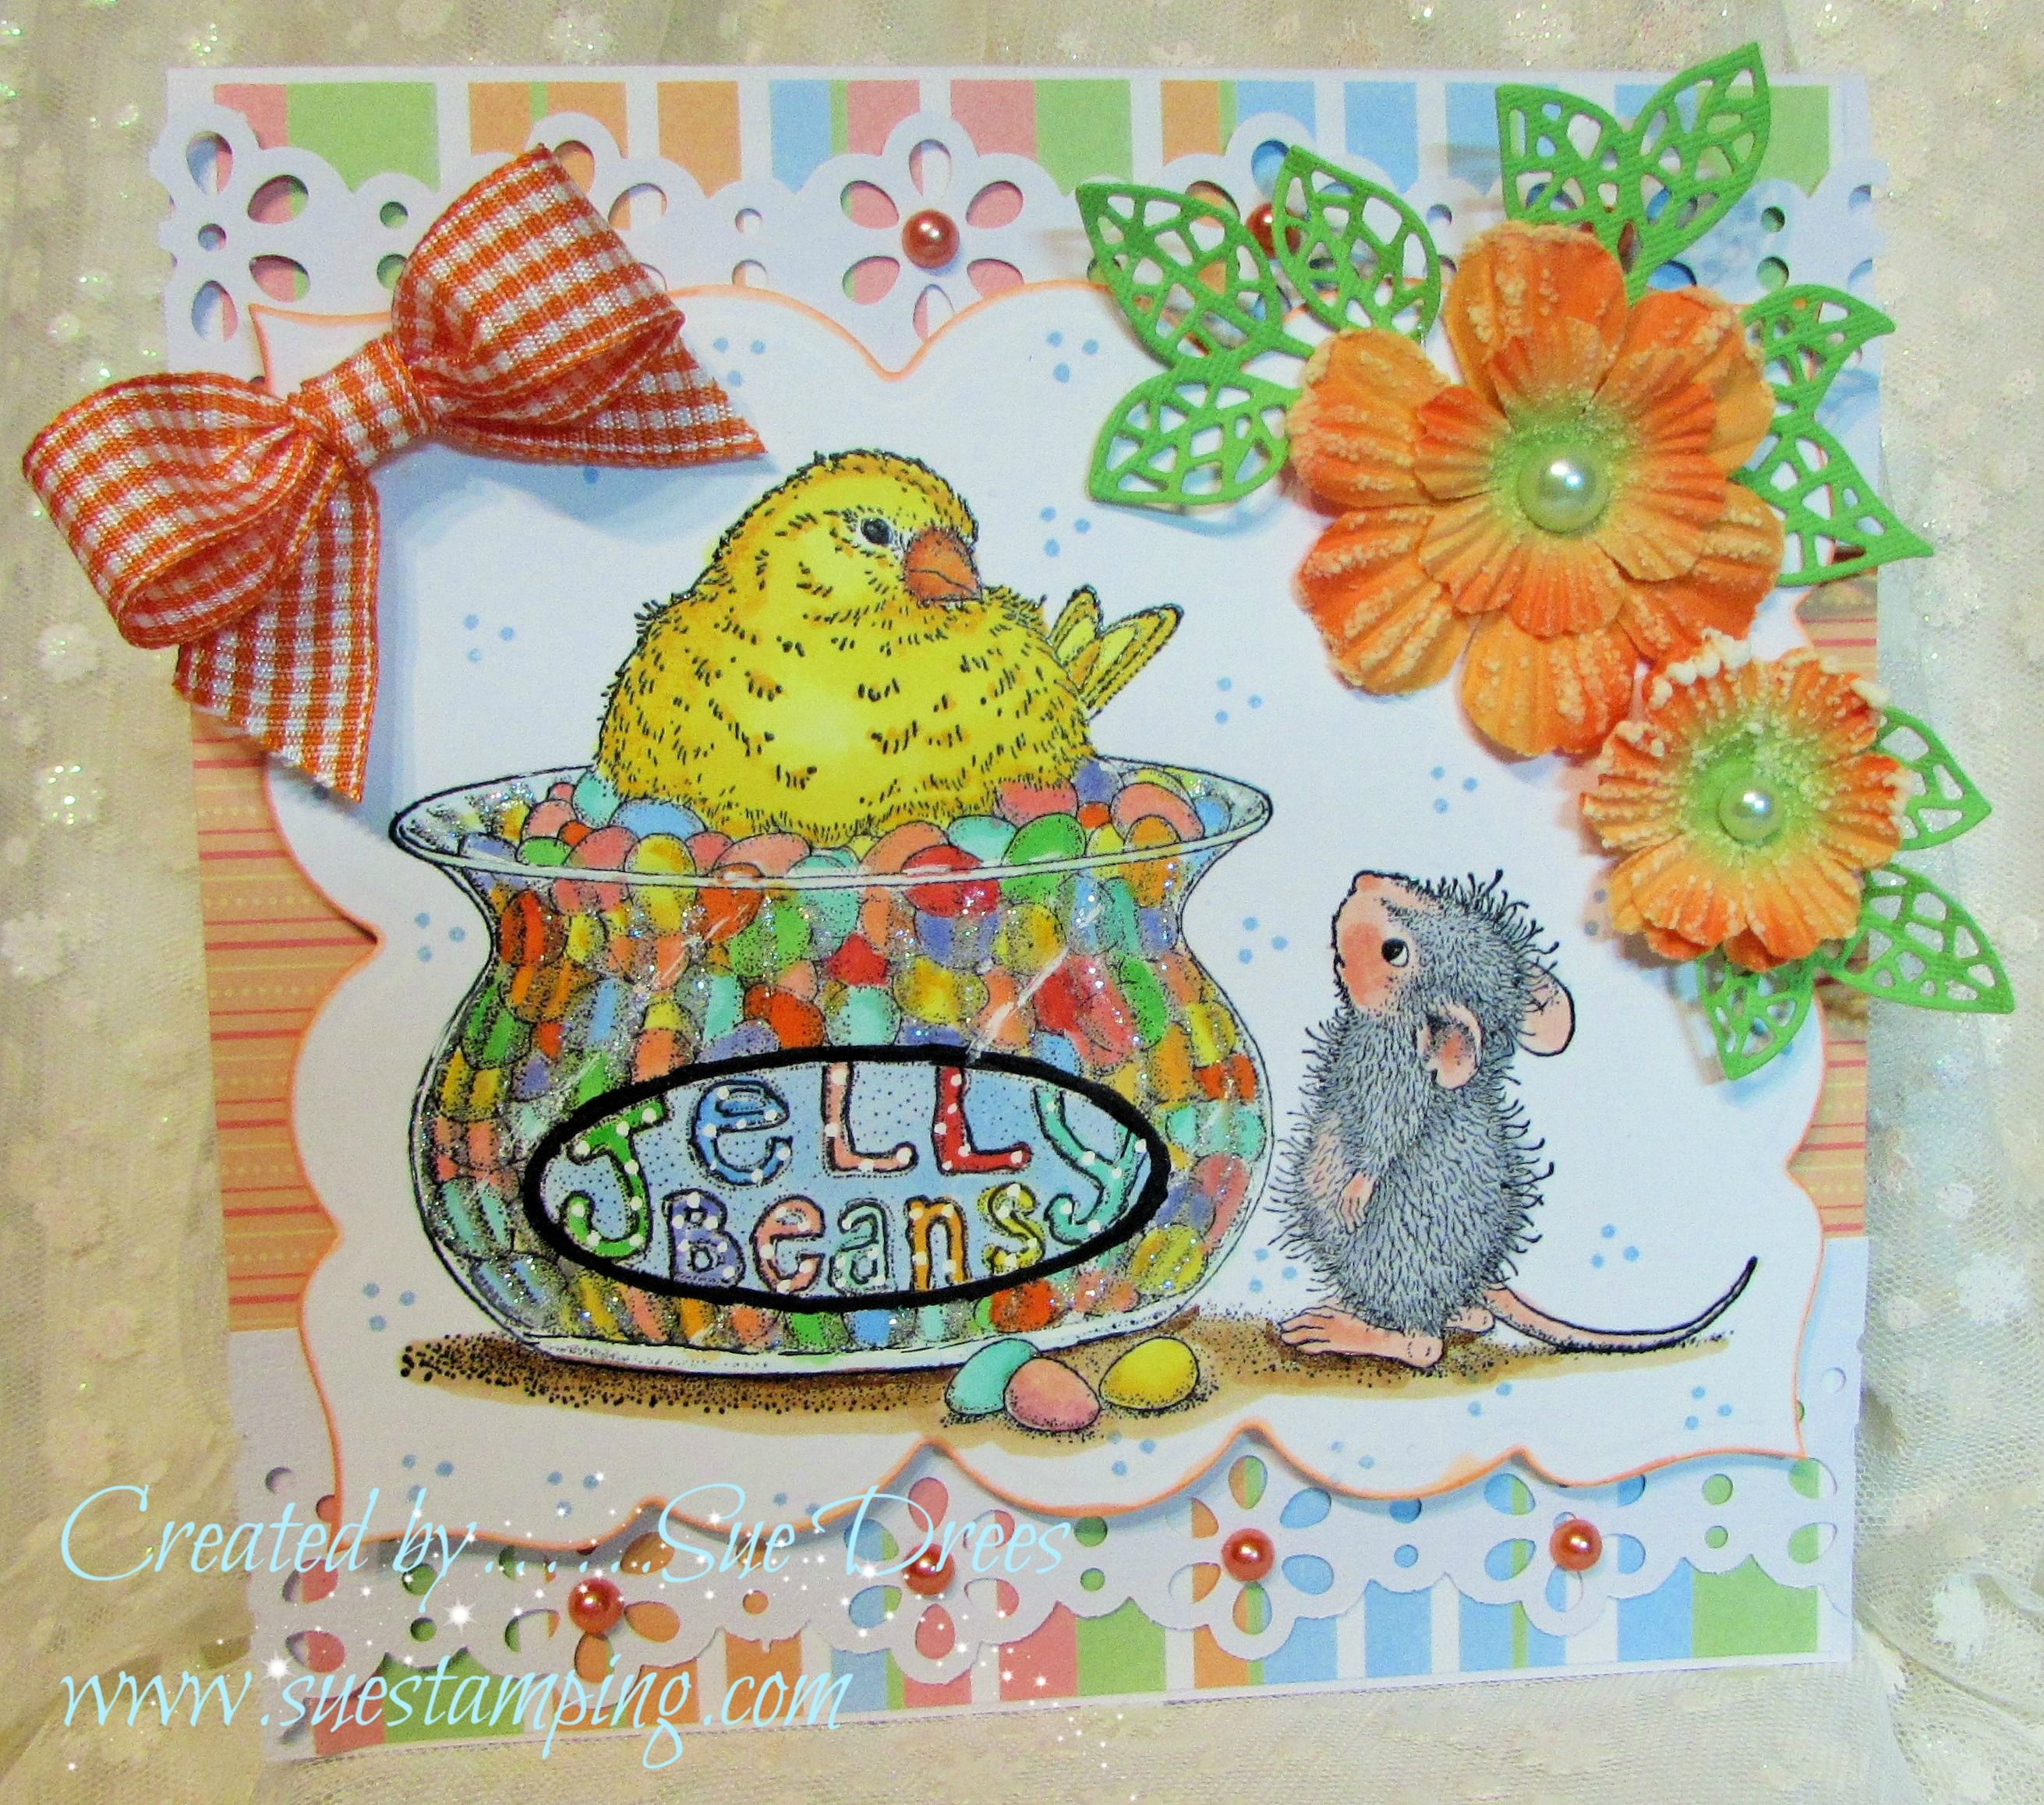 House Mouse Designs Jelly Bean Bird Stampendous